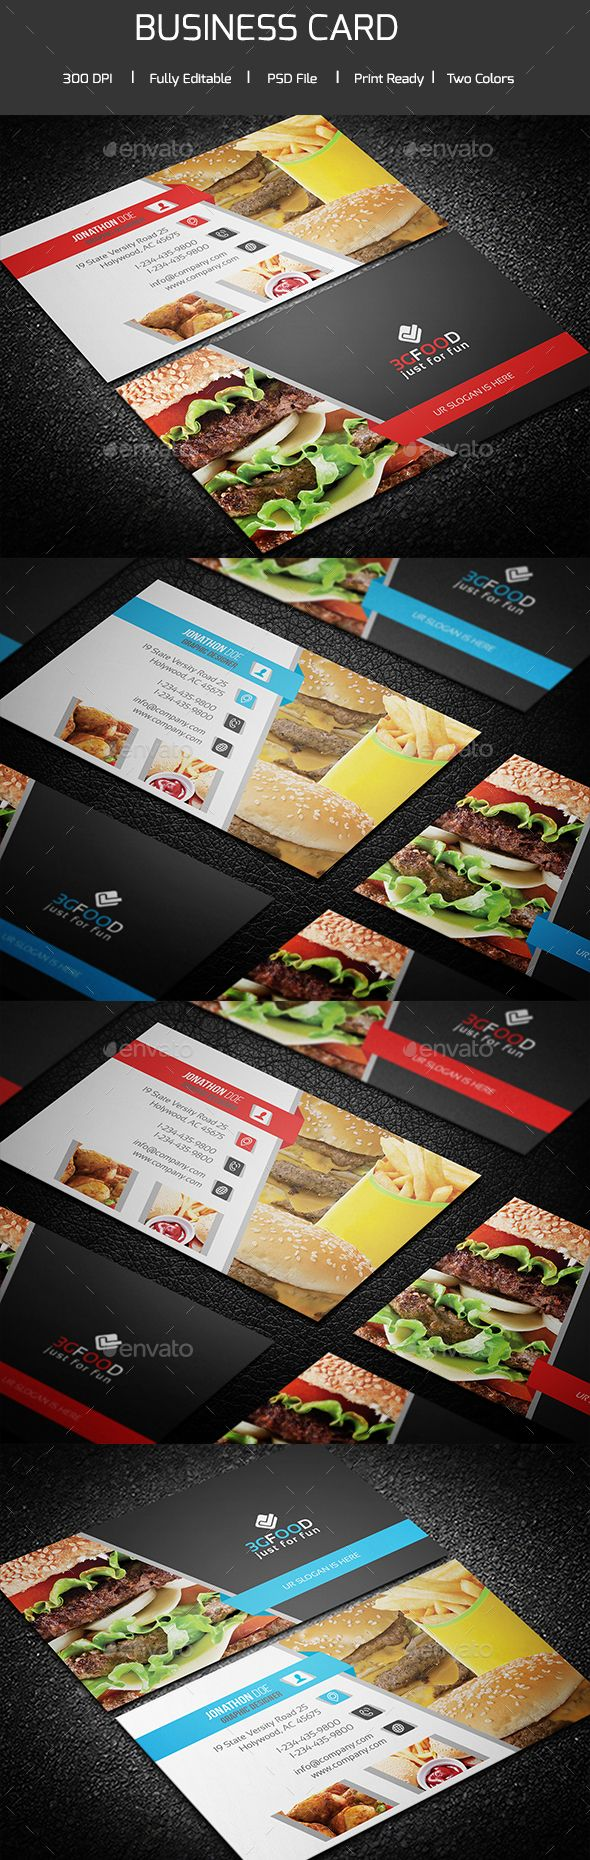 Simple restaurant business card template psd design download http simple restaurant business card template psd design download httpgraphicriver reheart Image collections